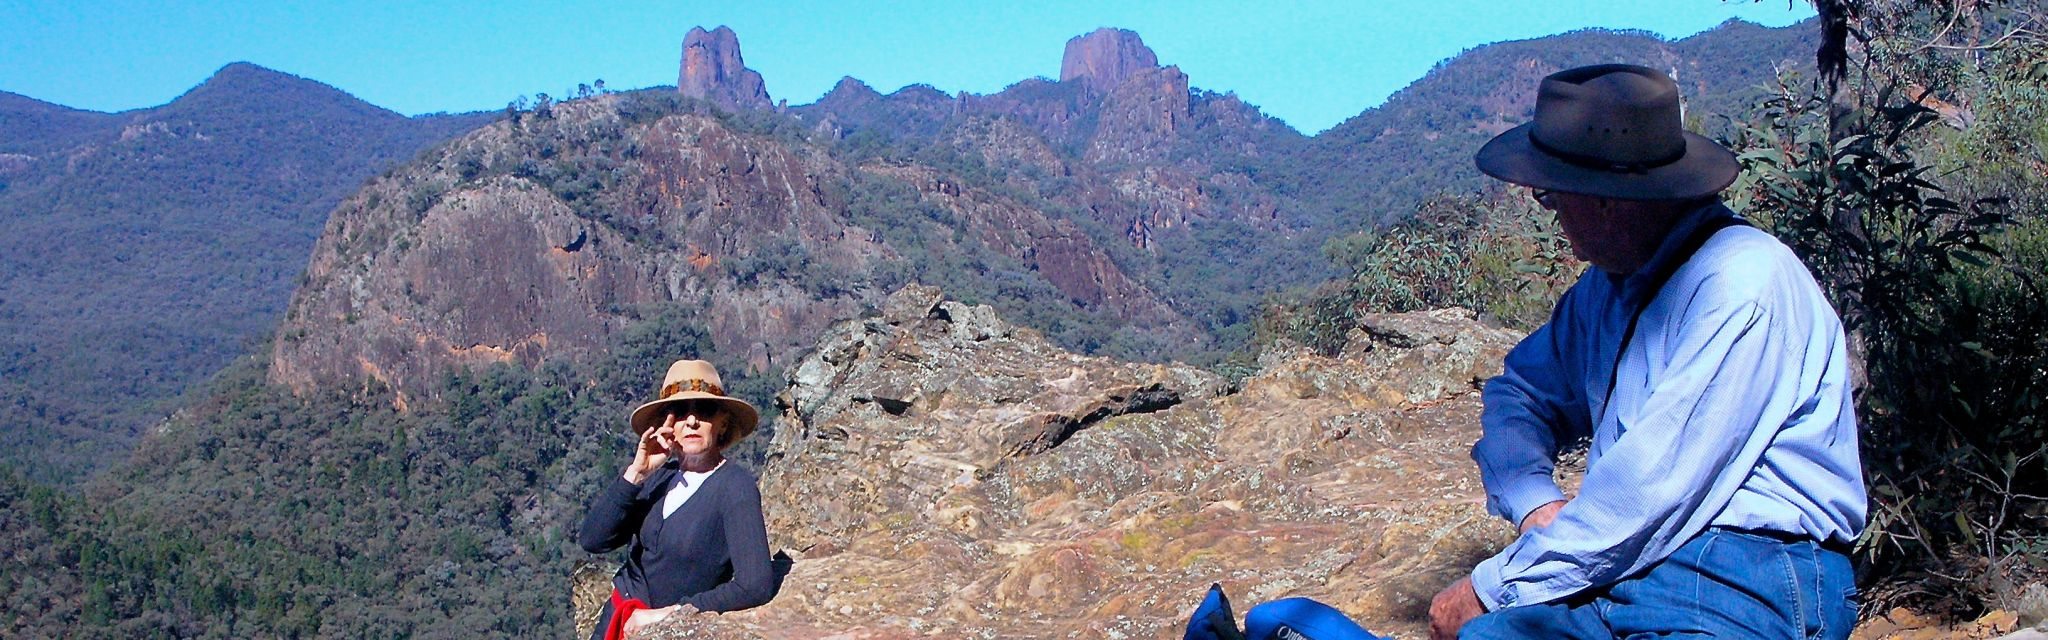 Seniors meet with a chat on Warrumbungles Trail during a Seniors Over 50s Holiday